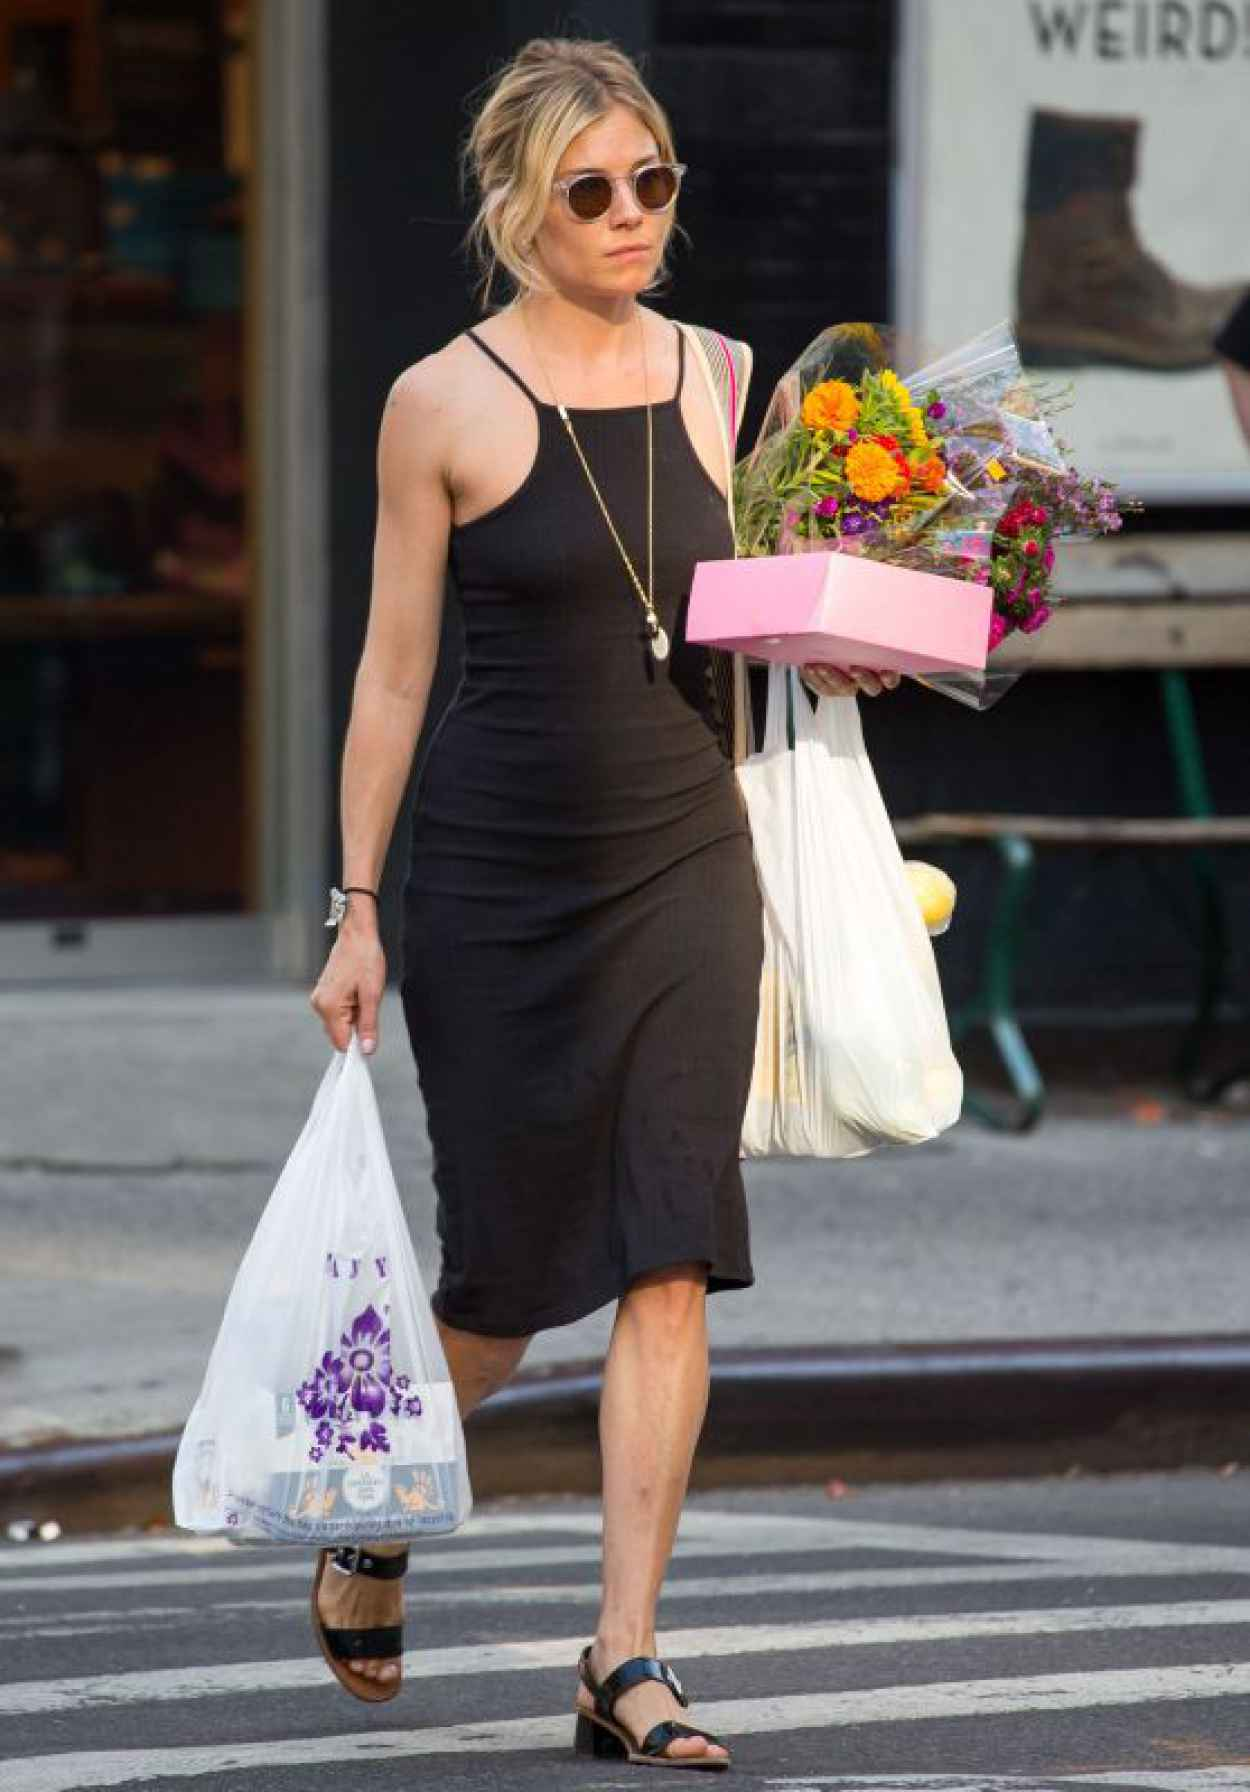 Sienna Miller - Street Fashion - Shopping in NYC, July 2015-1